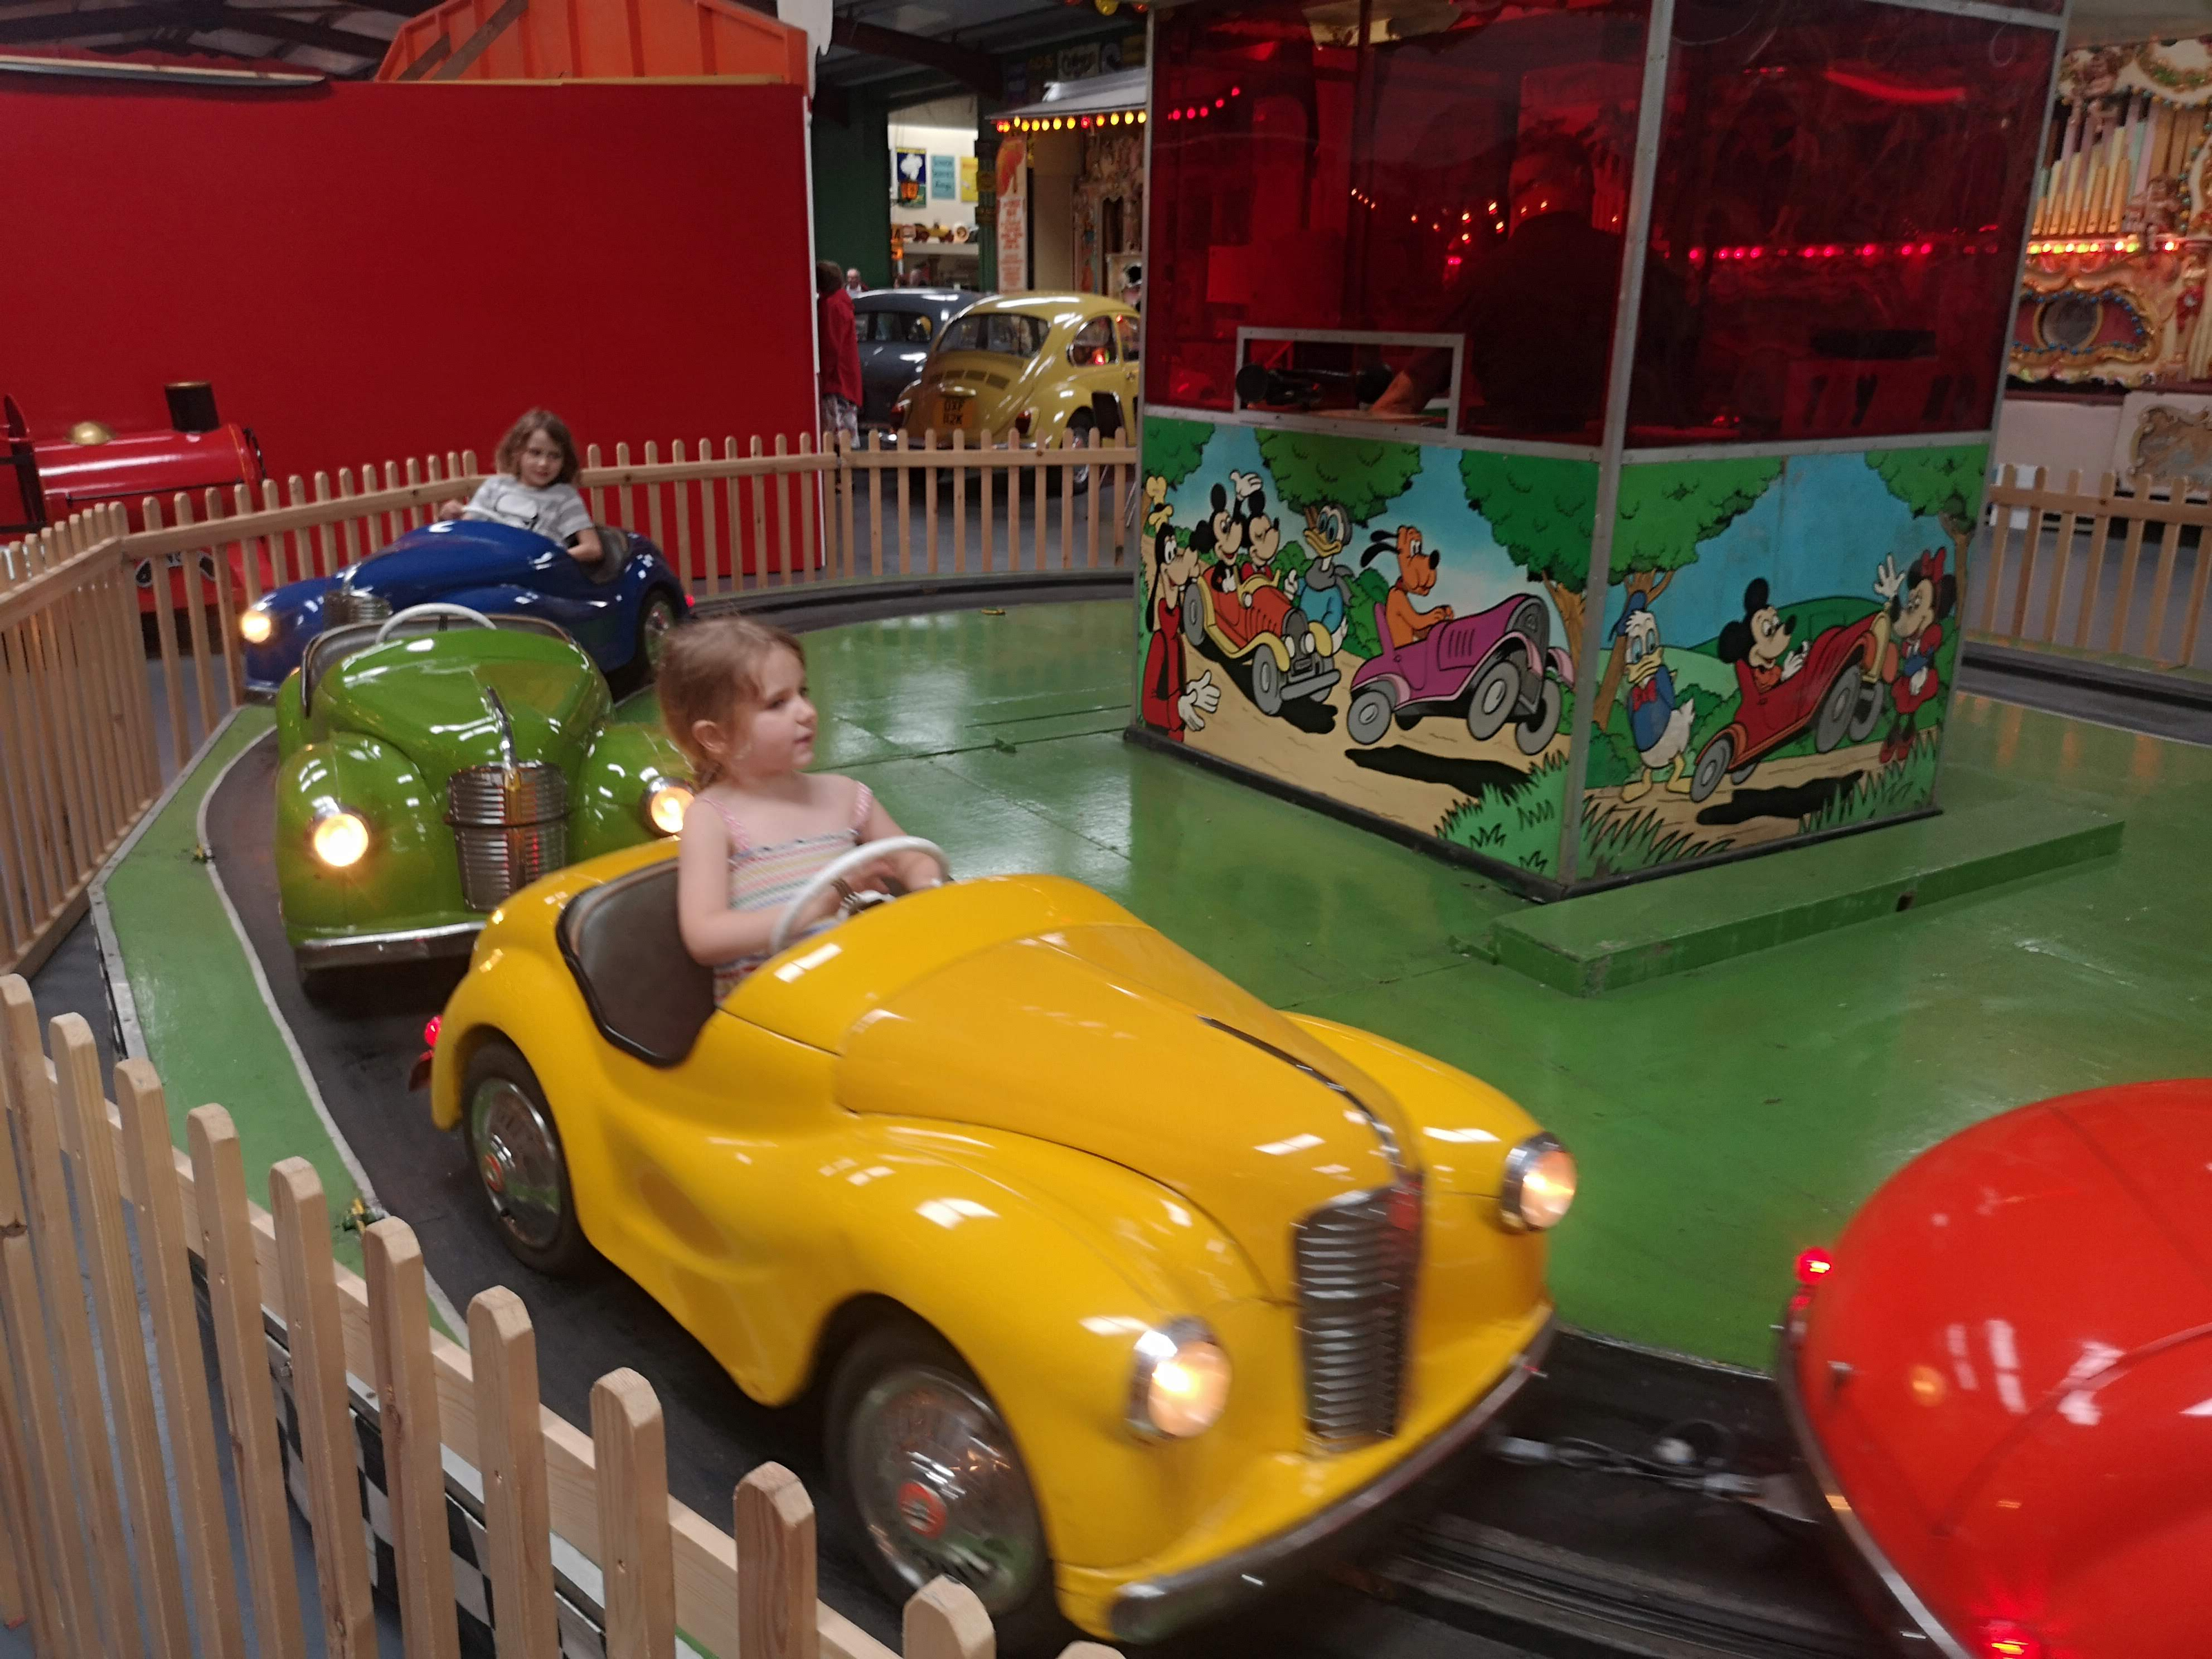 there are 4 little cars in primary colours. 2 girls ride in them happily